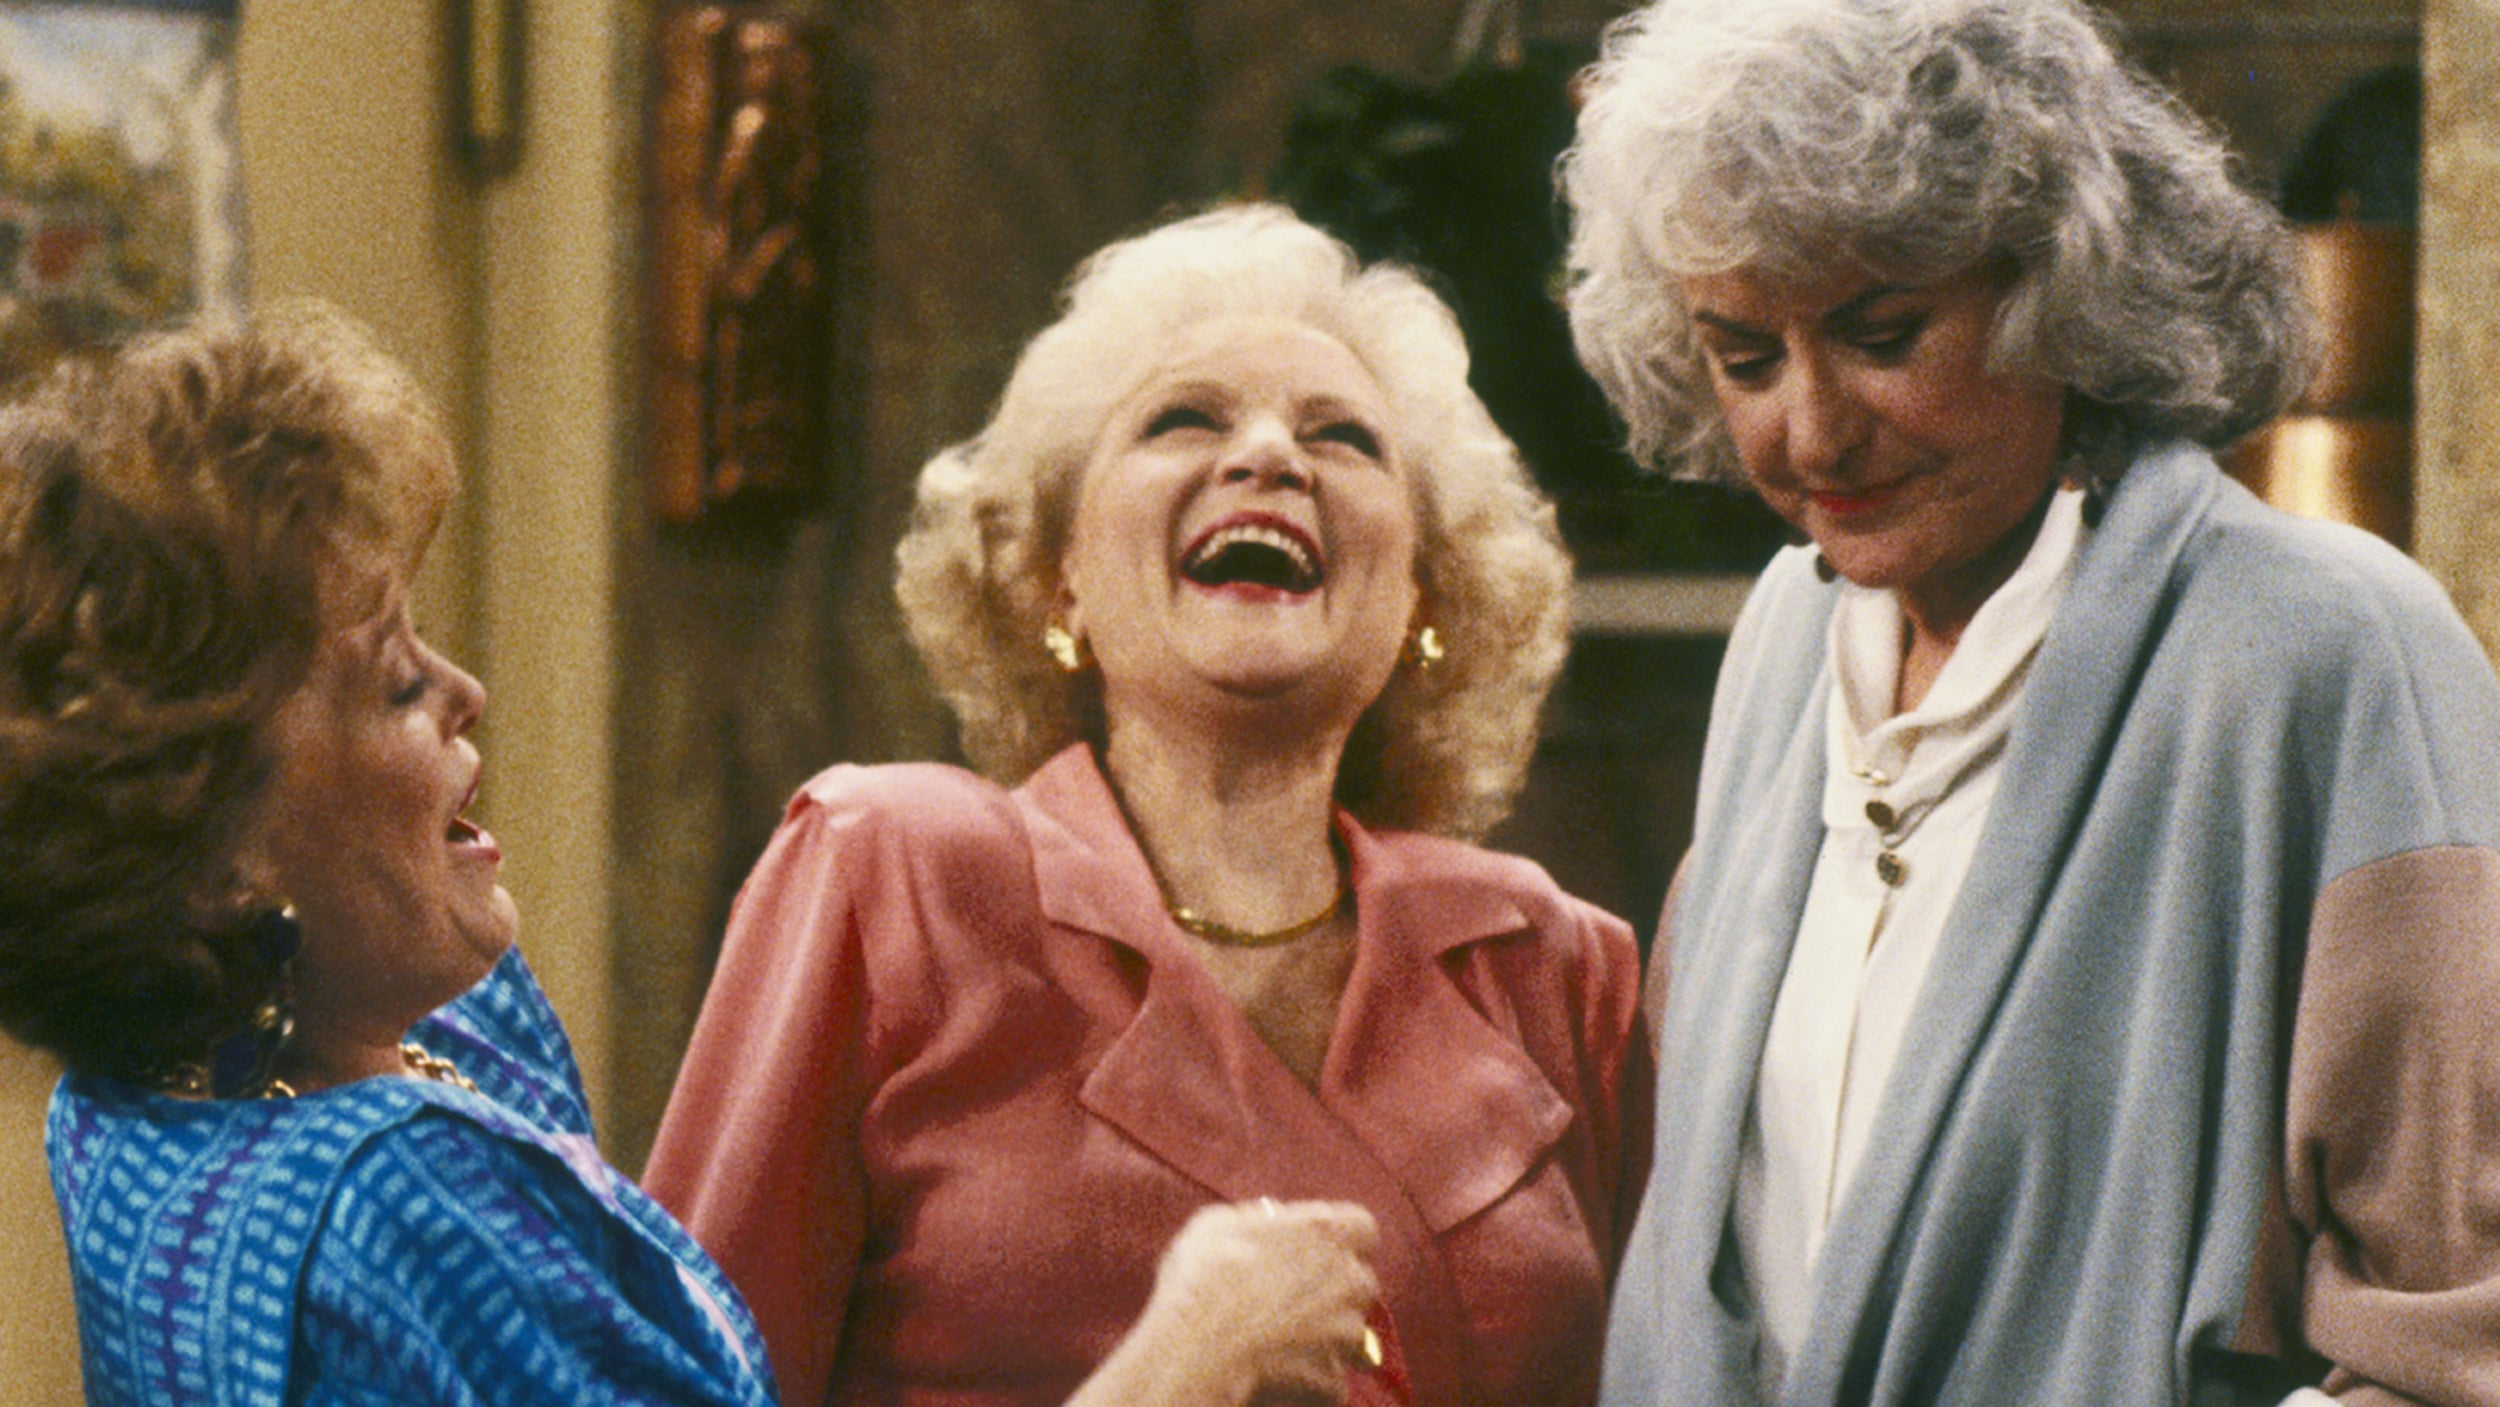 the golden girls rose laughing